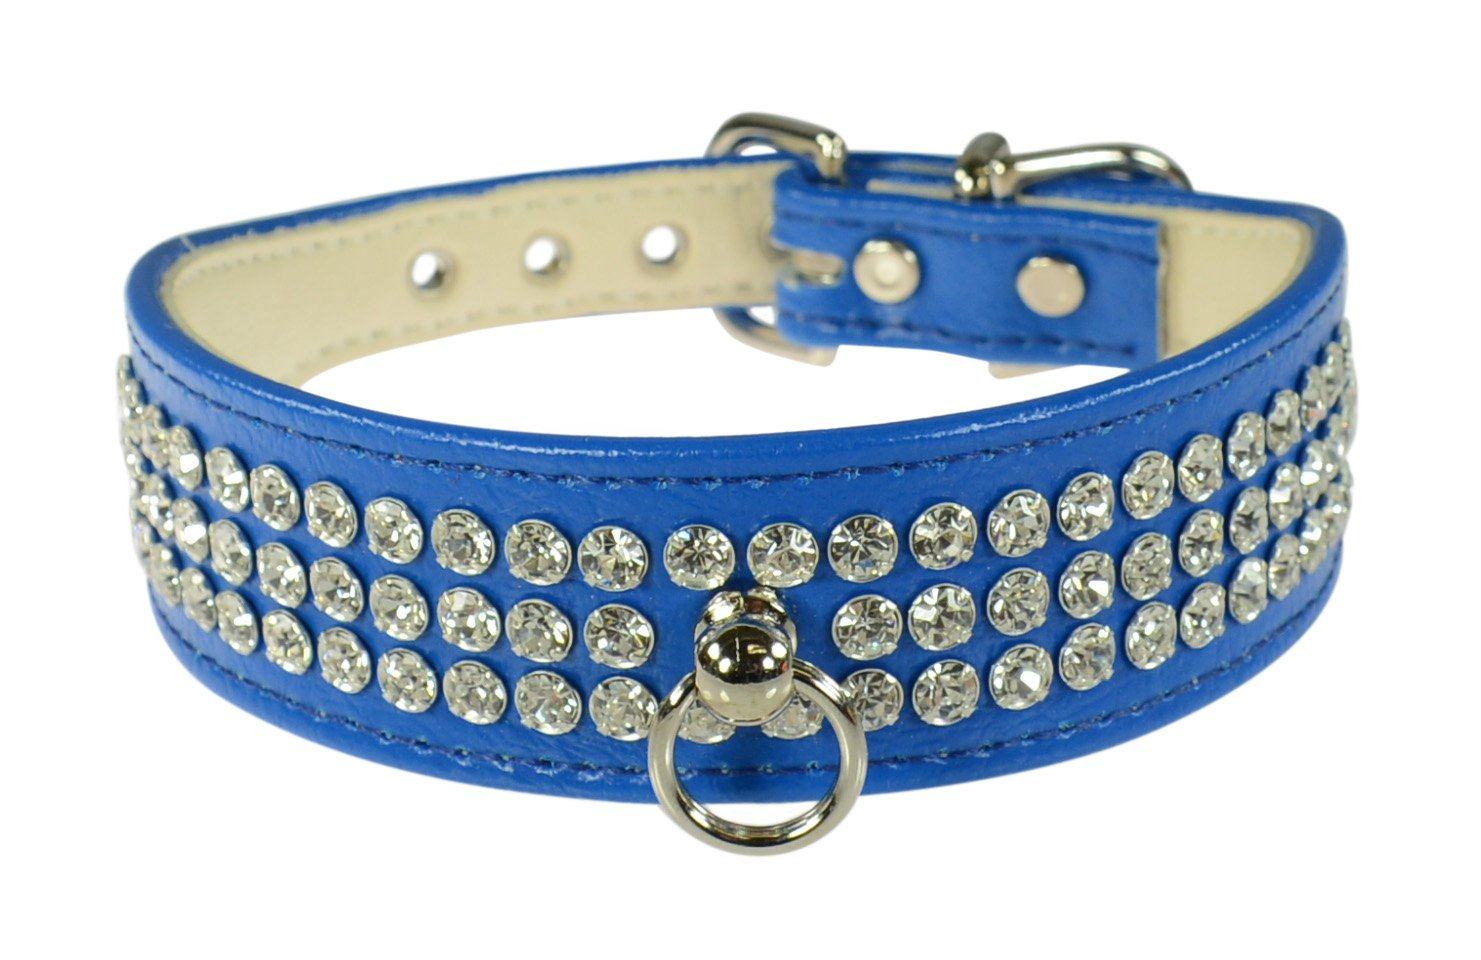 Evans Collars 1 1 8  Shaped Collar with 3 Row Jewels, Size 10, Vinyl, bluee